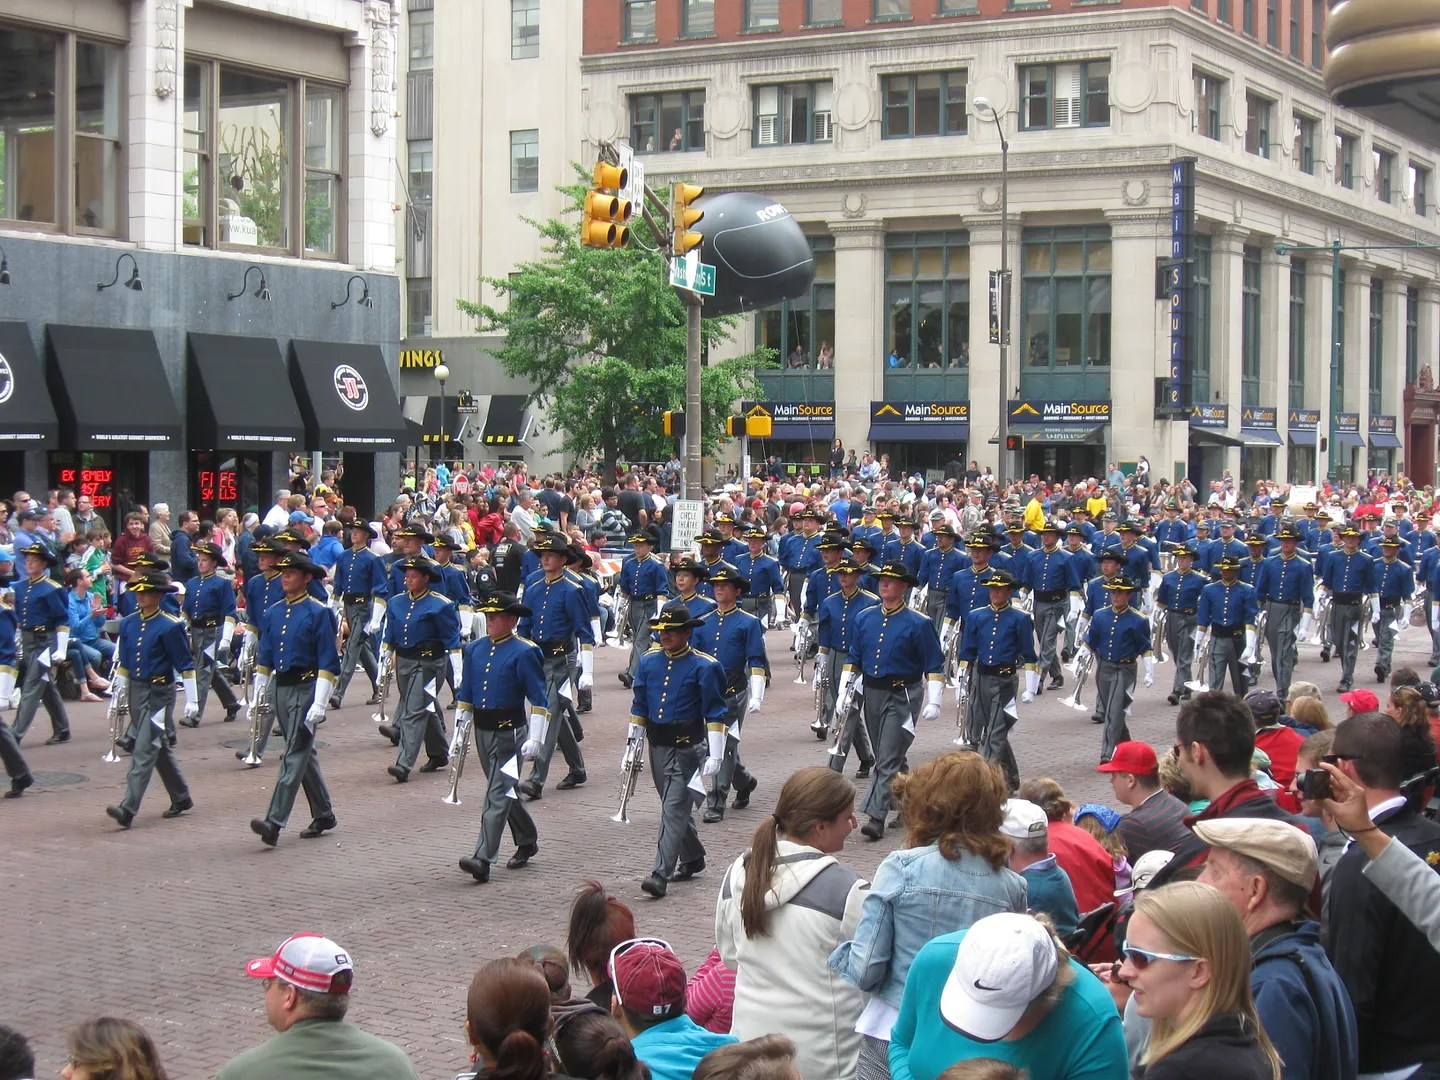 Trooper Drum and Bugle Corps, Casper, Wyoming, 500 Festival Parade 2013, Indianapolis